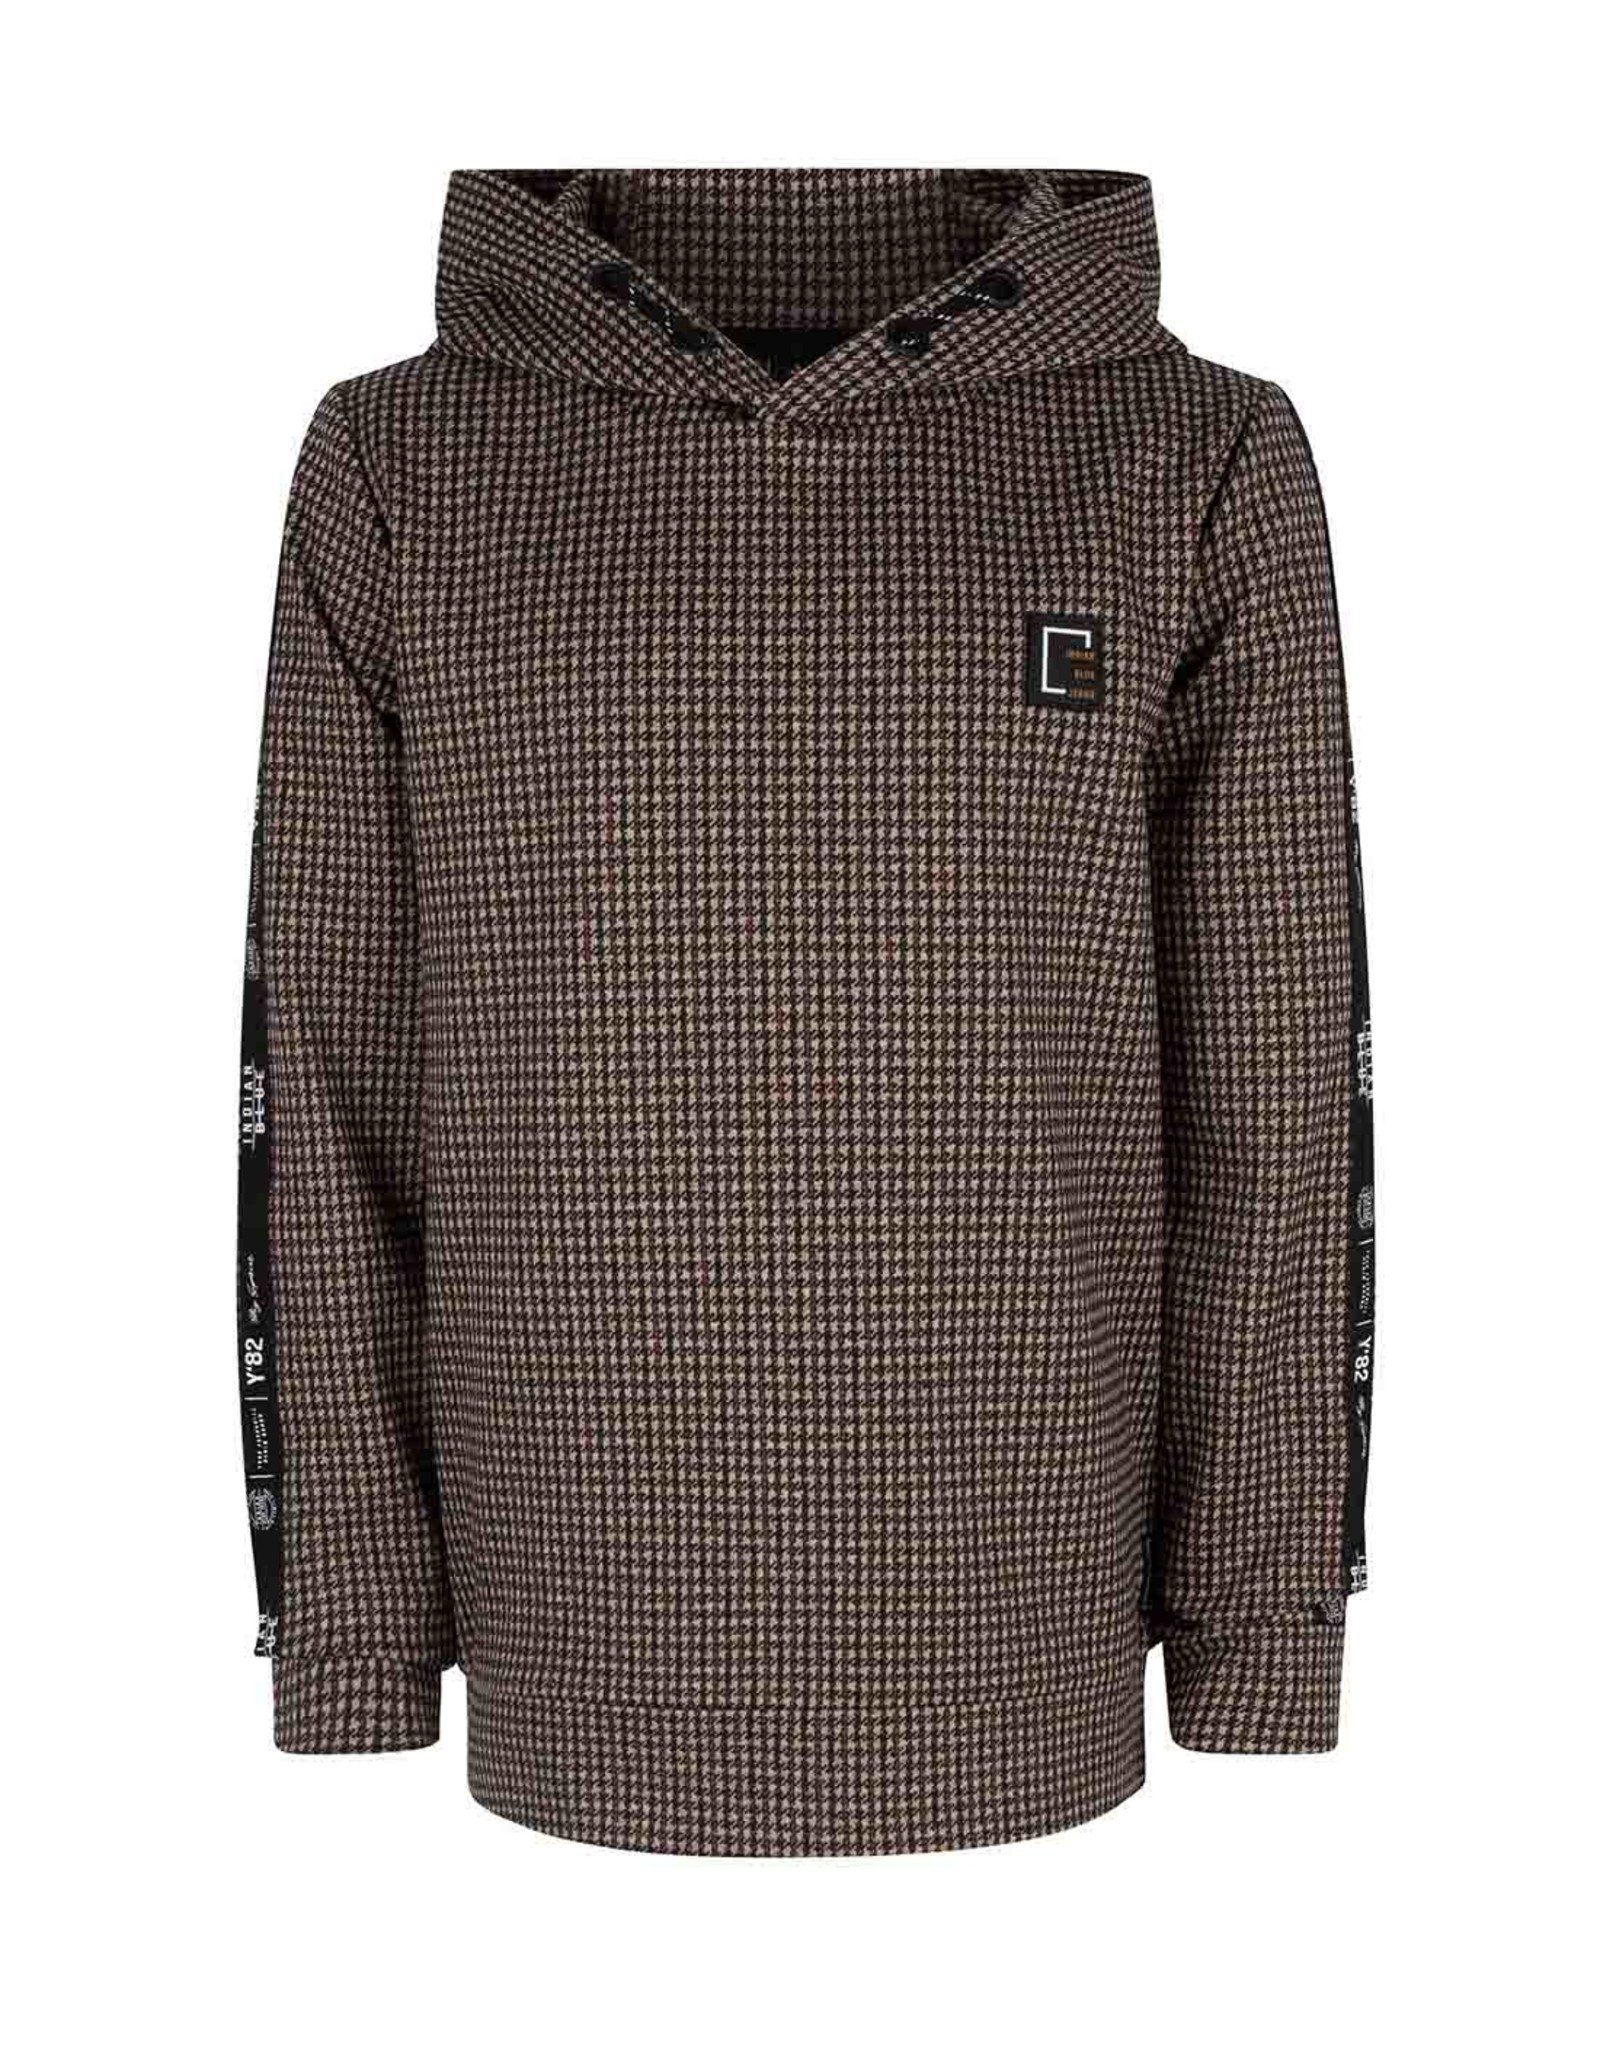 Indian Blue Jeans Hoodie bruin-rood checked